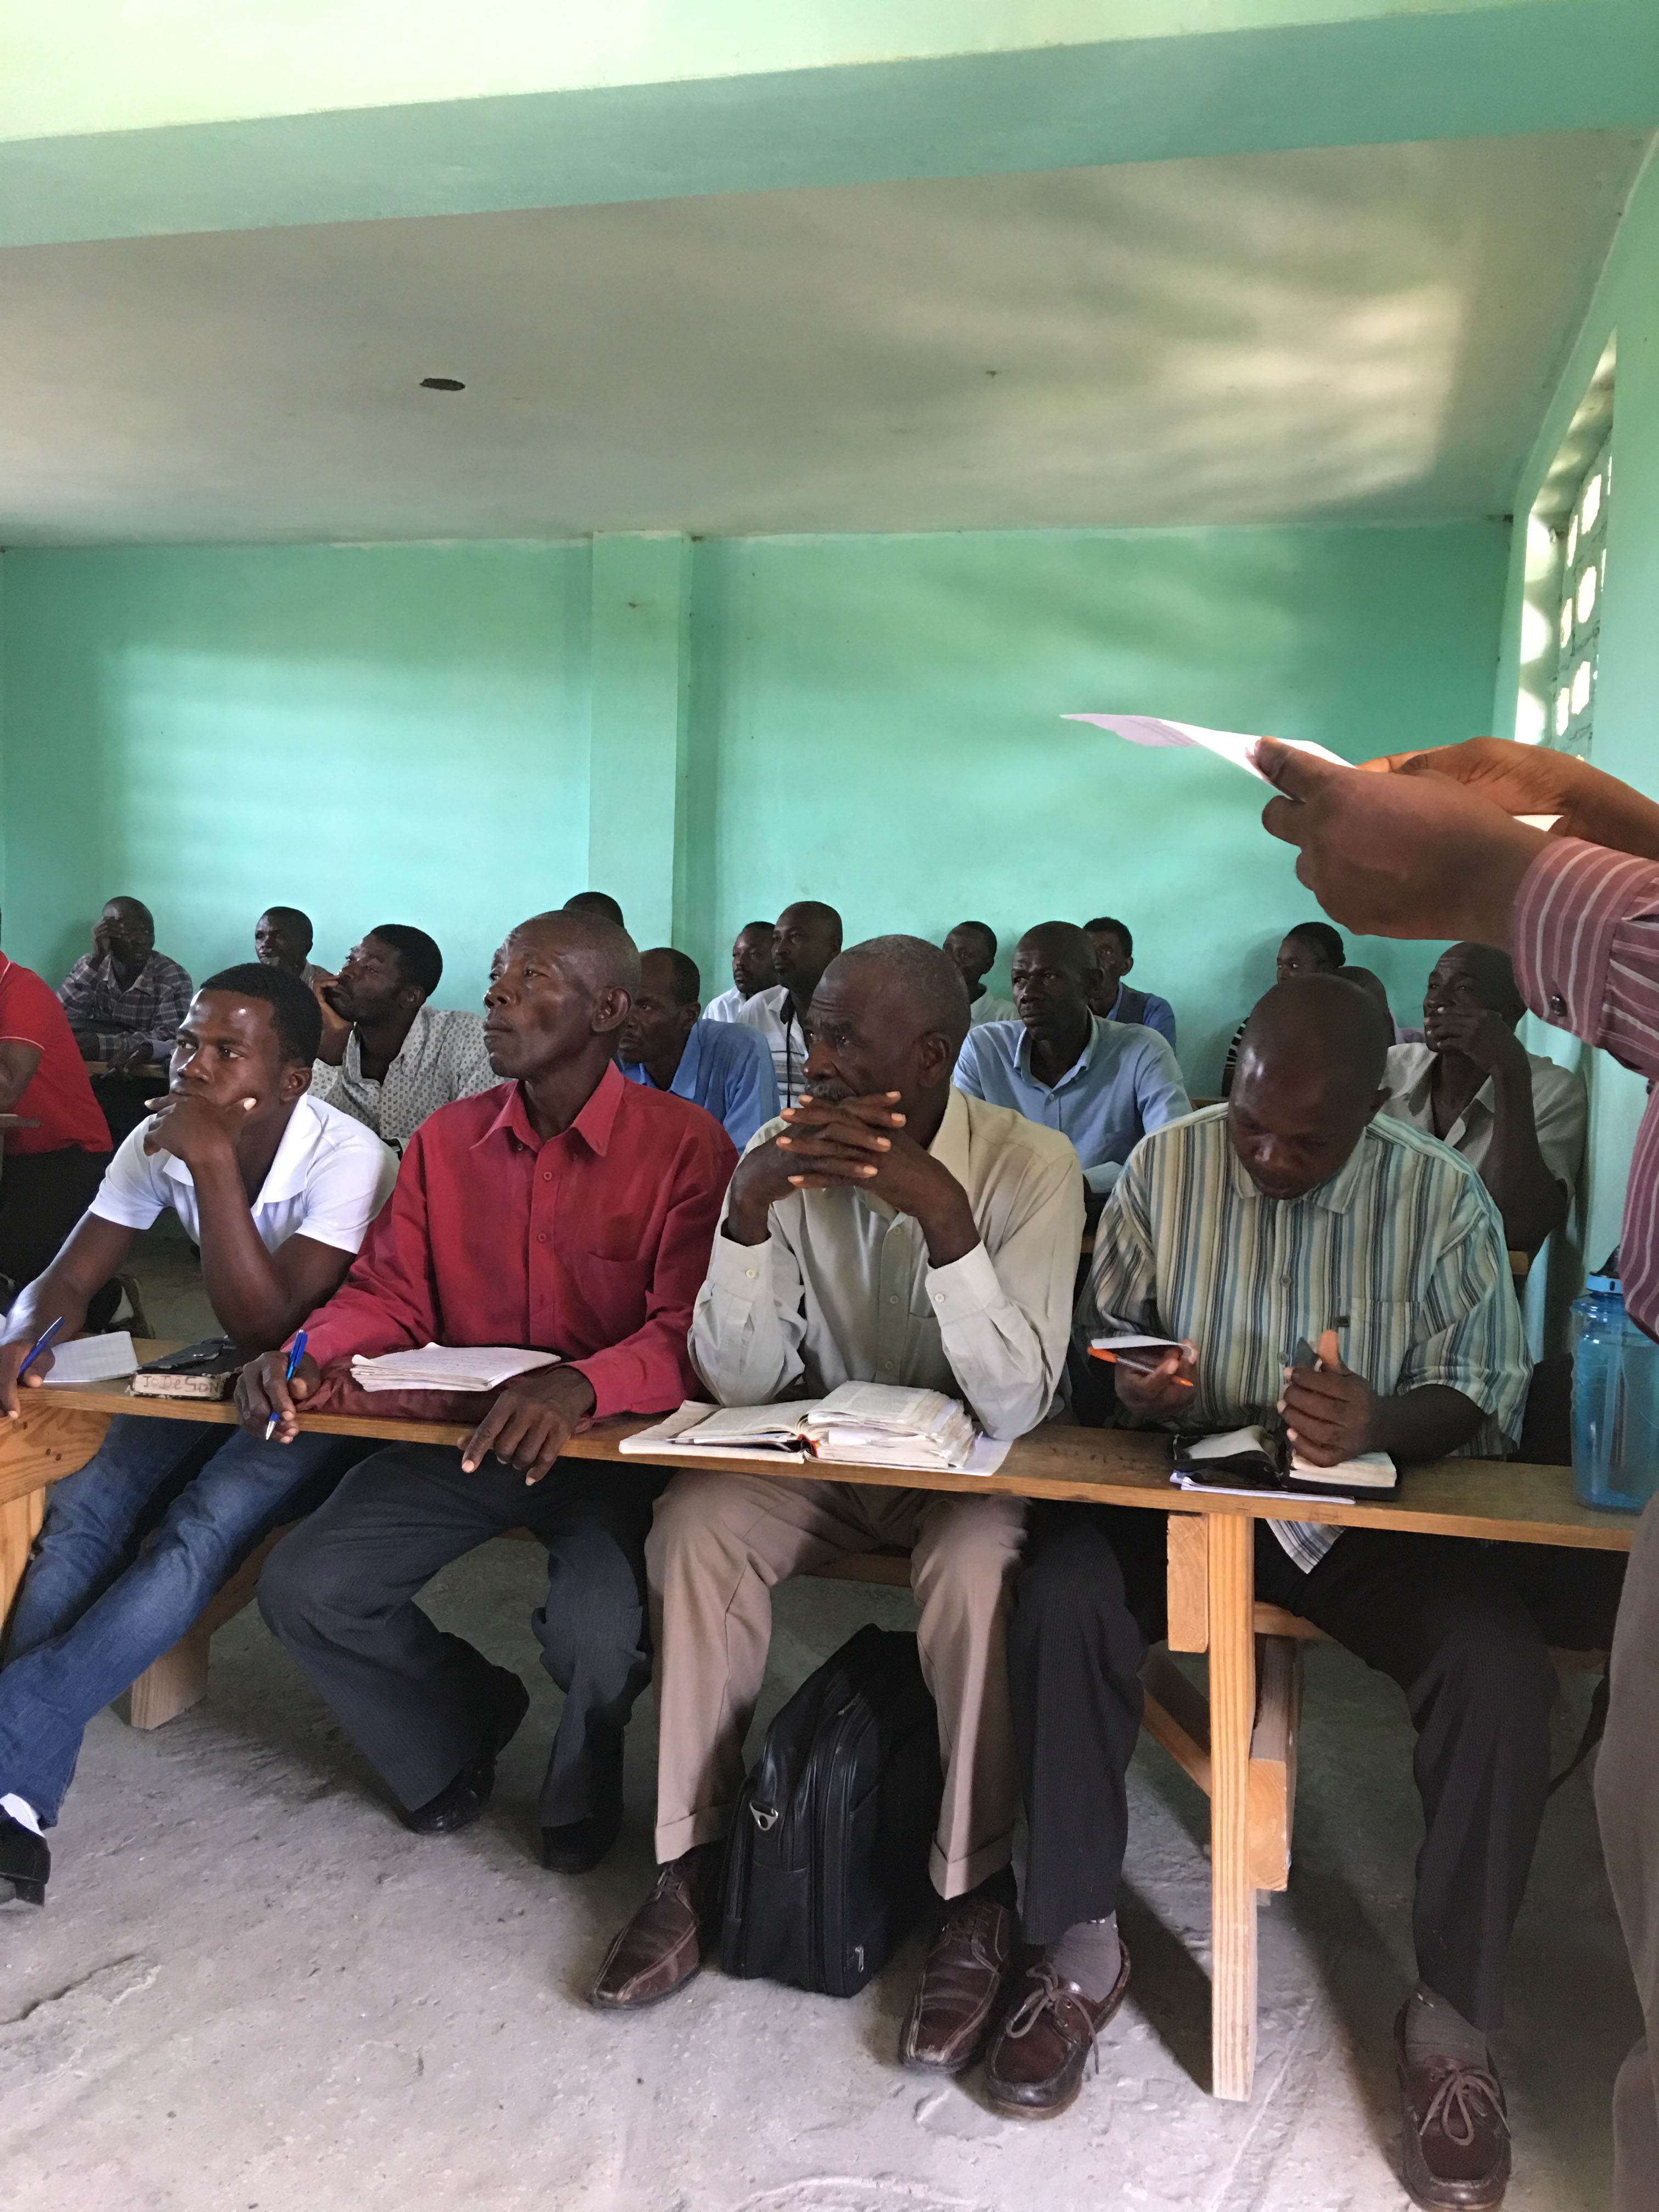 <b>Haiti Trip 2017</b><br> Chris Jackson, the Missions &amp; Outreach Pastor at Westside Church in Fort Pierce, Florida, and I conducted a three day Pastor's Conferences for about thirty pastors and church leaders on basic Bible doctrine at the LaCroix New Testament Mission.